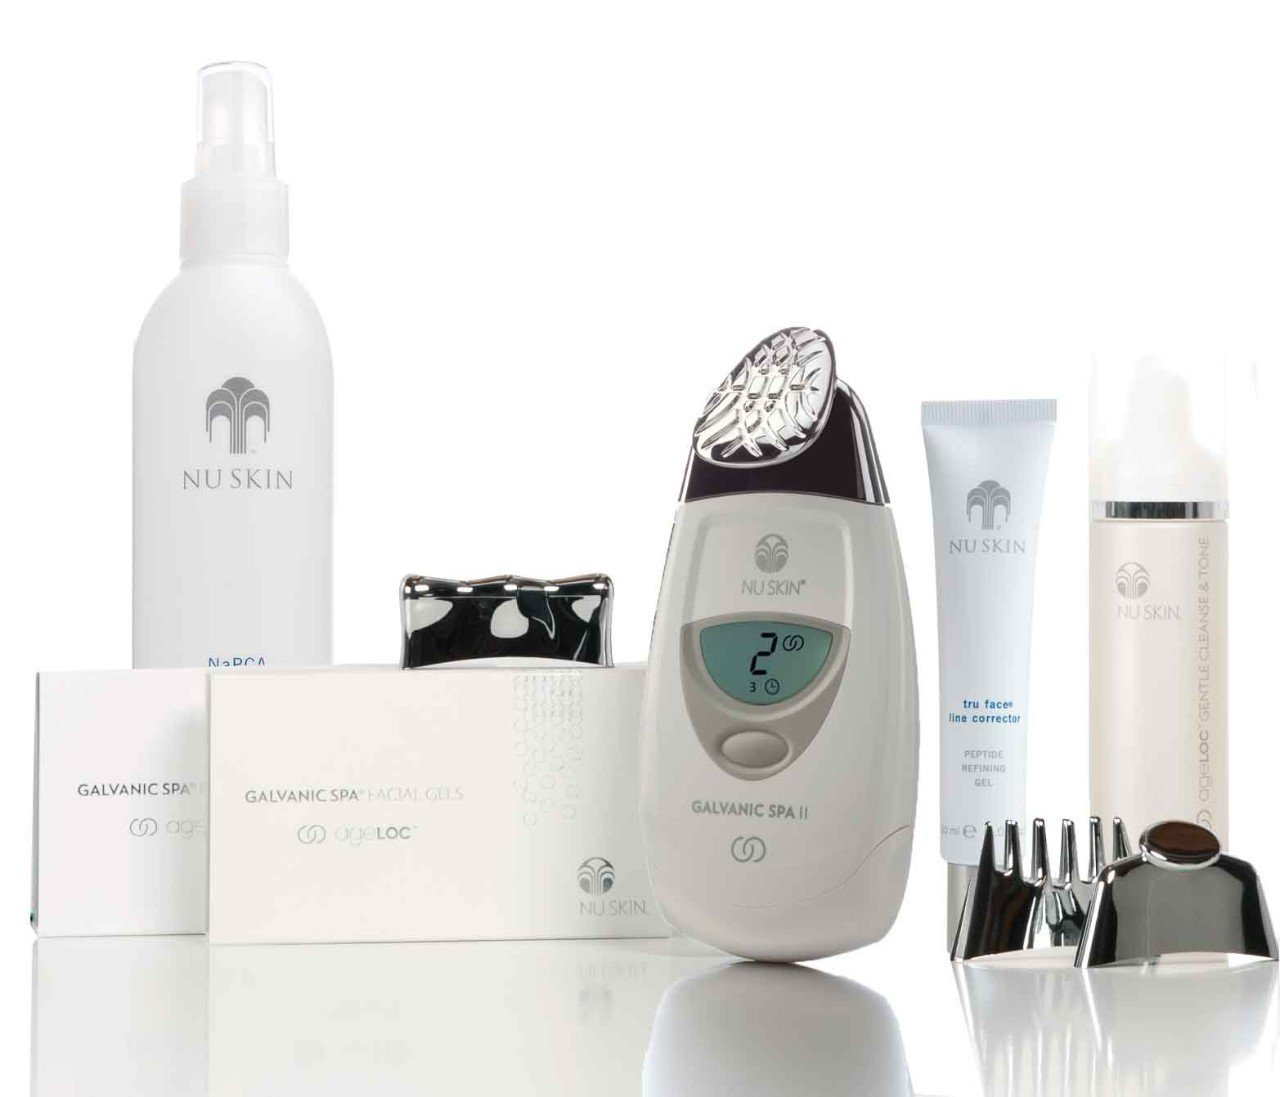 Nu Skin reDESIGN Galvanic Face Spa White Package by Nu Skin